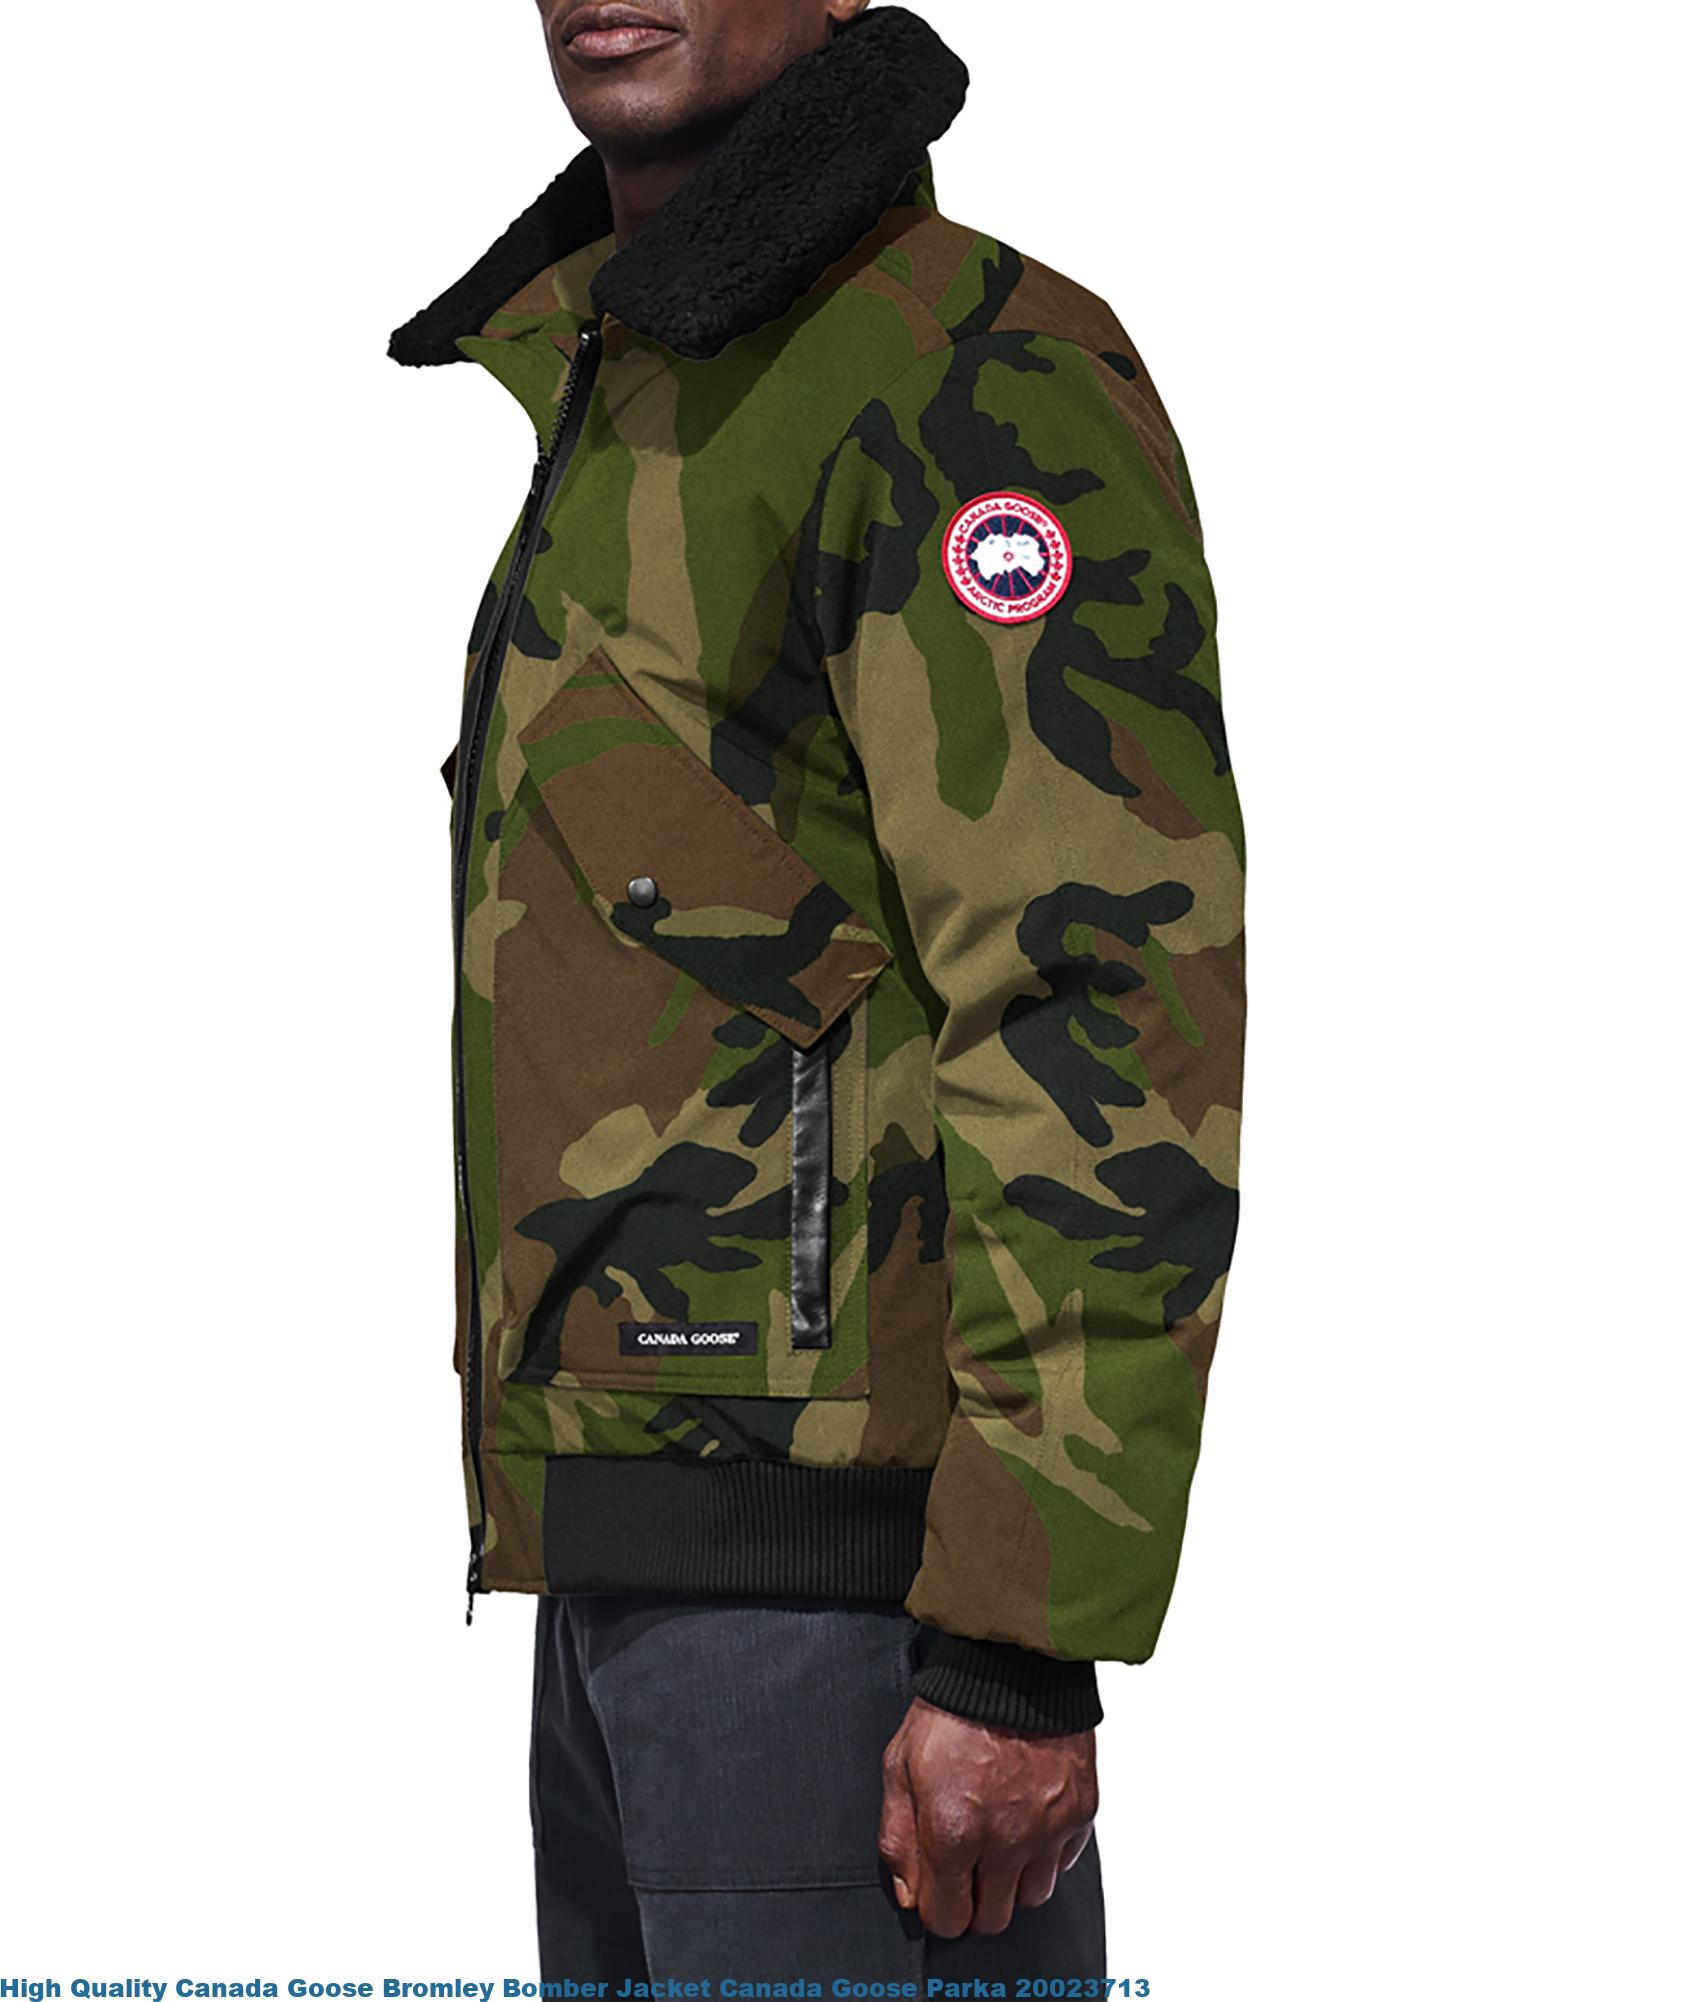 High Quality Canada Goose Bromley Bomber Jacket Canada ...